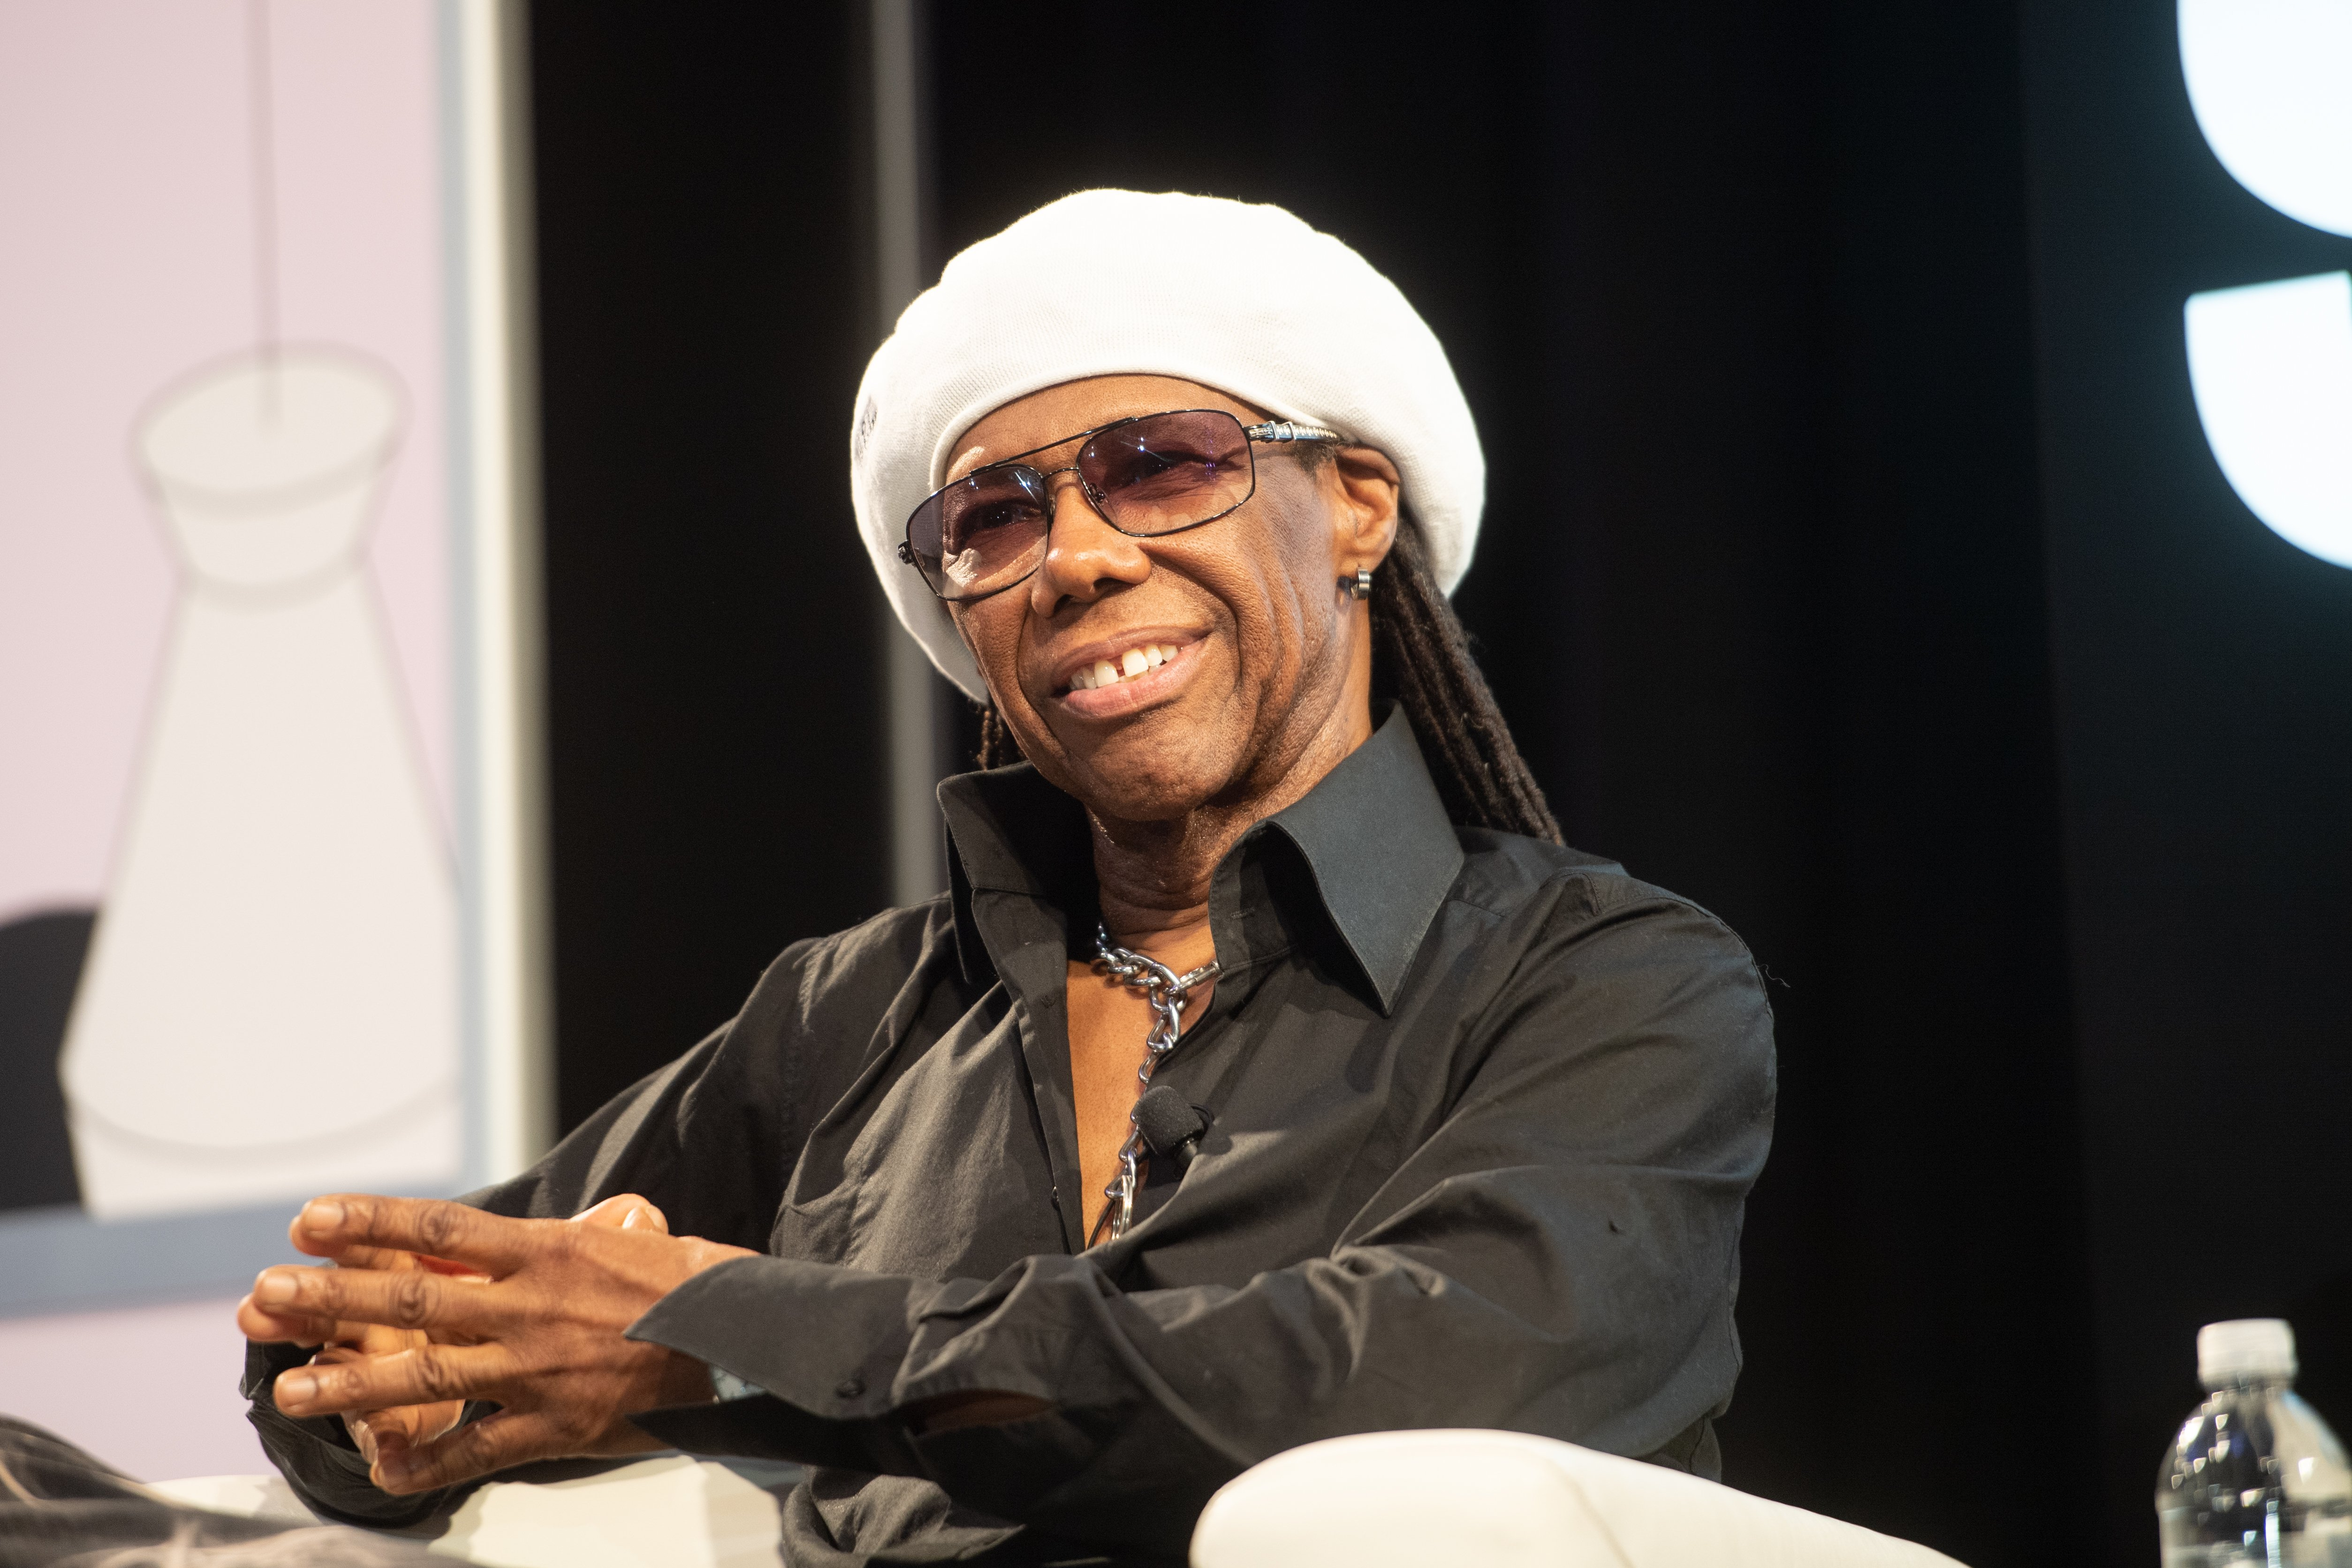 Nile Rodgers speaks onstage during the Featured Session: Nile Rodgers & Merck Mercuriadis - 2019 SXSW Conference and Festivals at Austin Convention Center on March 14, 2019 | Photo: GettyImages